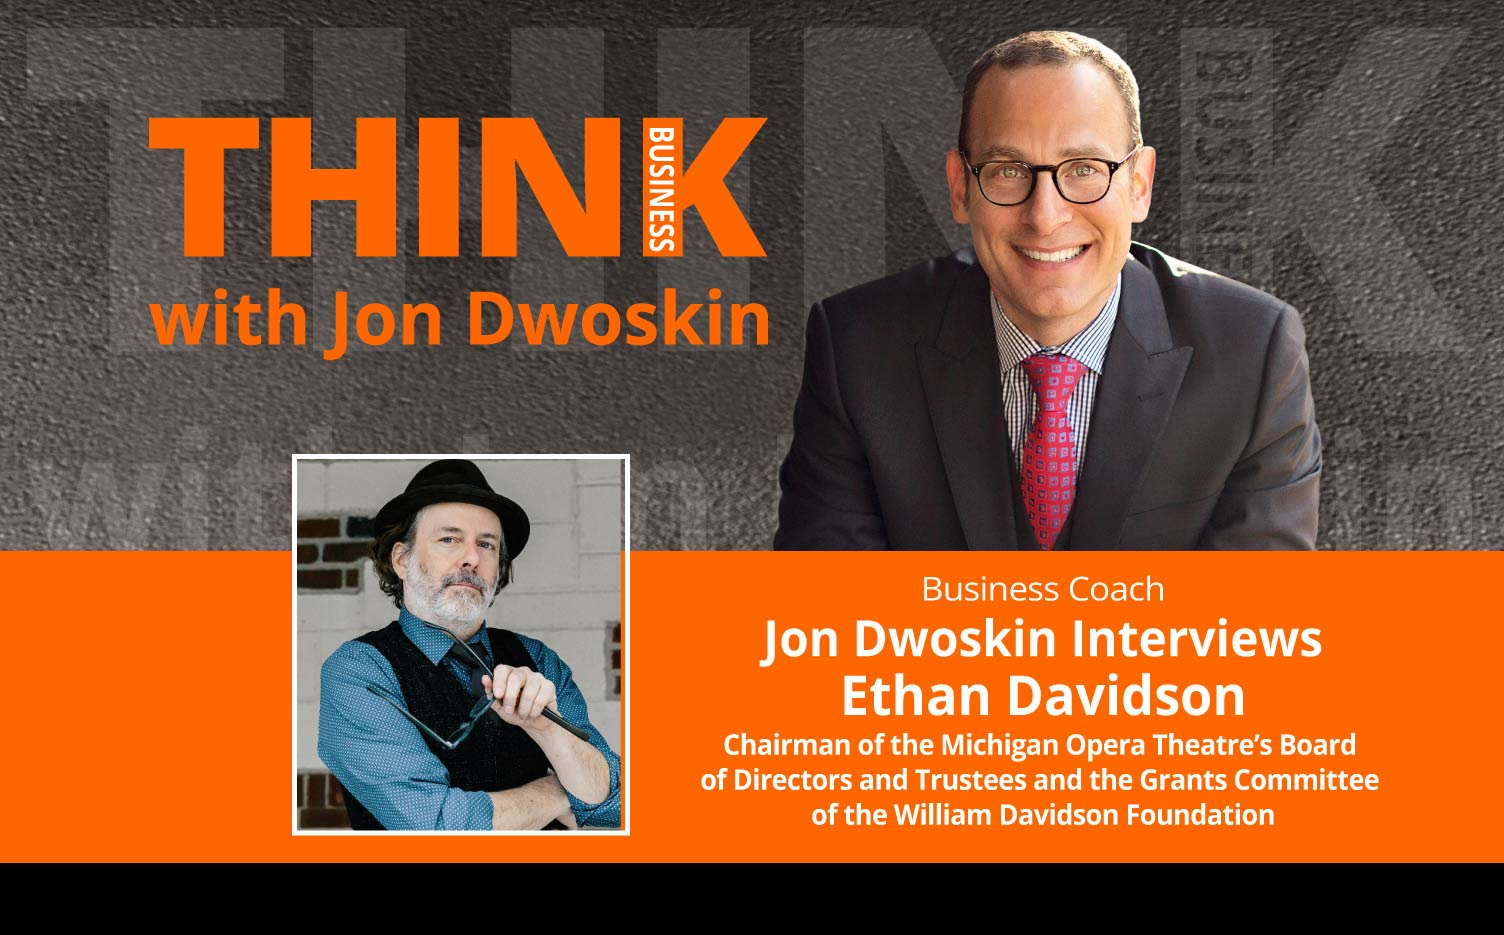 THINK Business Podcast: Jon Dwoskin Interviews Ethan Davidson, Chairman of the Michigan Opera Theatre's Board of Directors and Trustees and the Grants Committee of the William Davidson Foundation